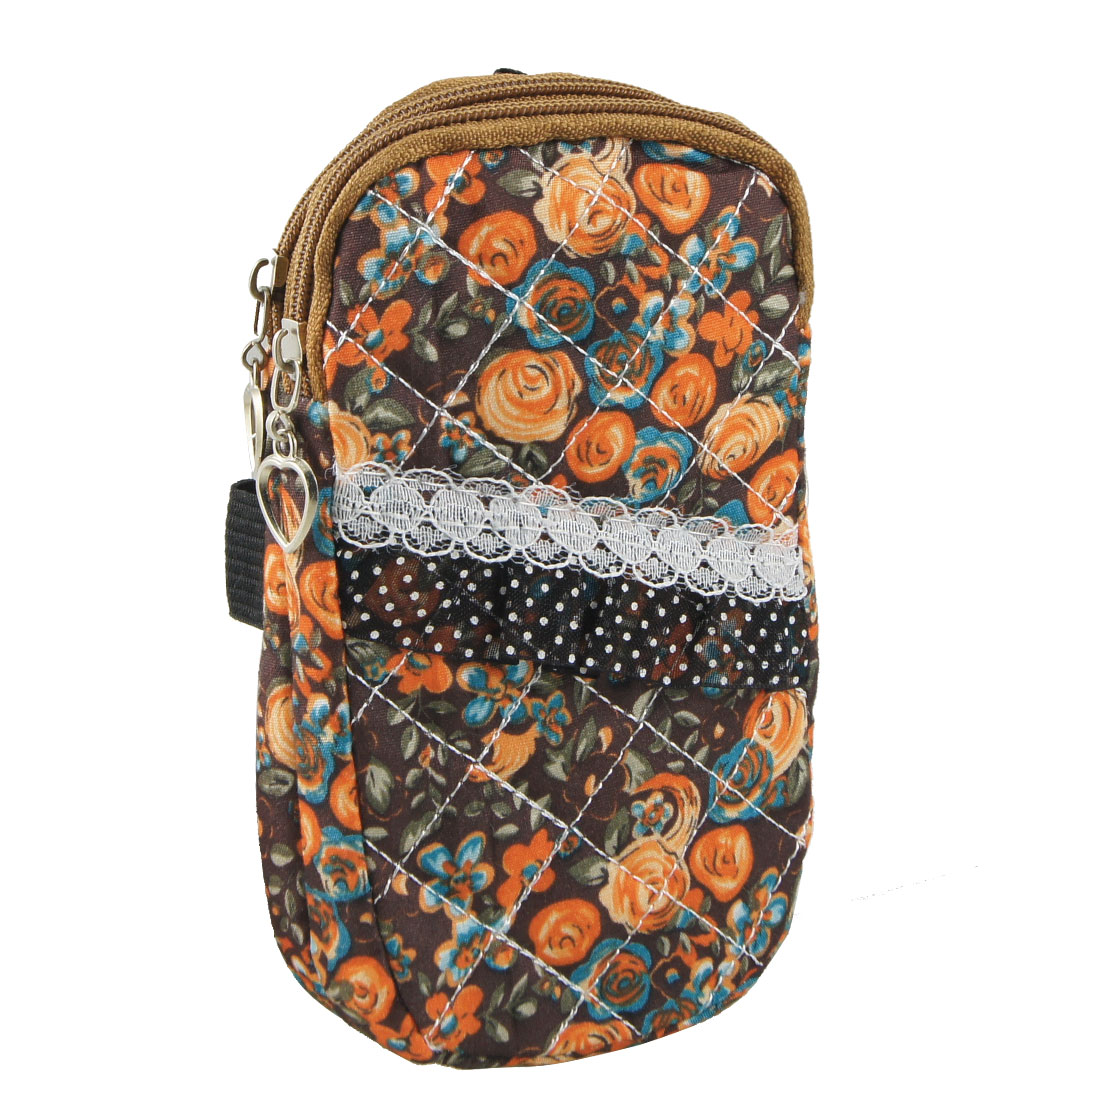 Lace Decor Orange Flowers Print 2 Pockets Metal Heart Zipper Phone Wrist Bag